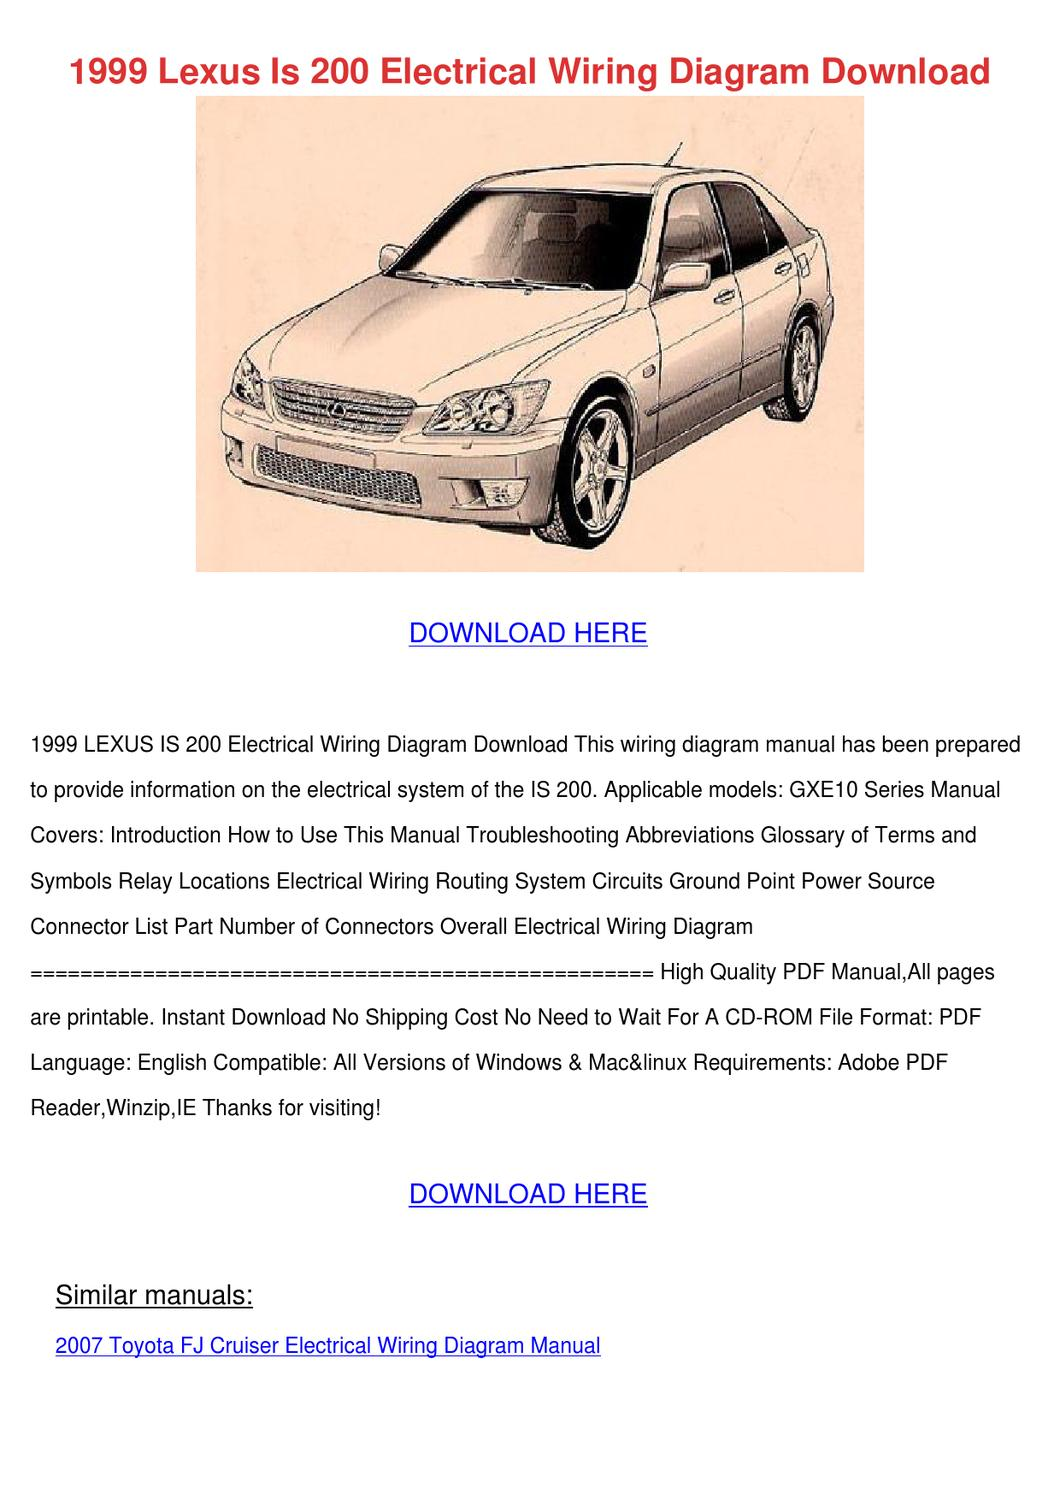 1999 Lexus Is 200 Electrical Wiring Diagram D By